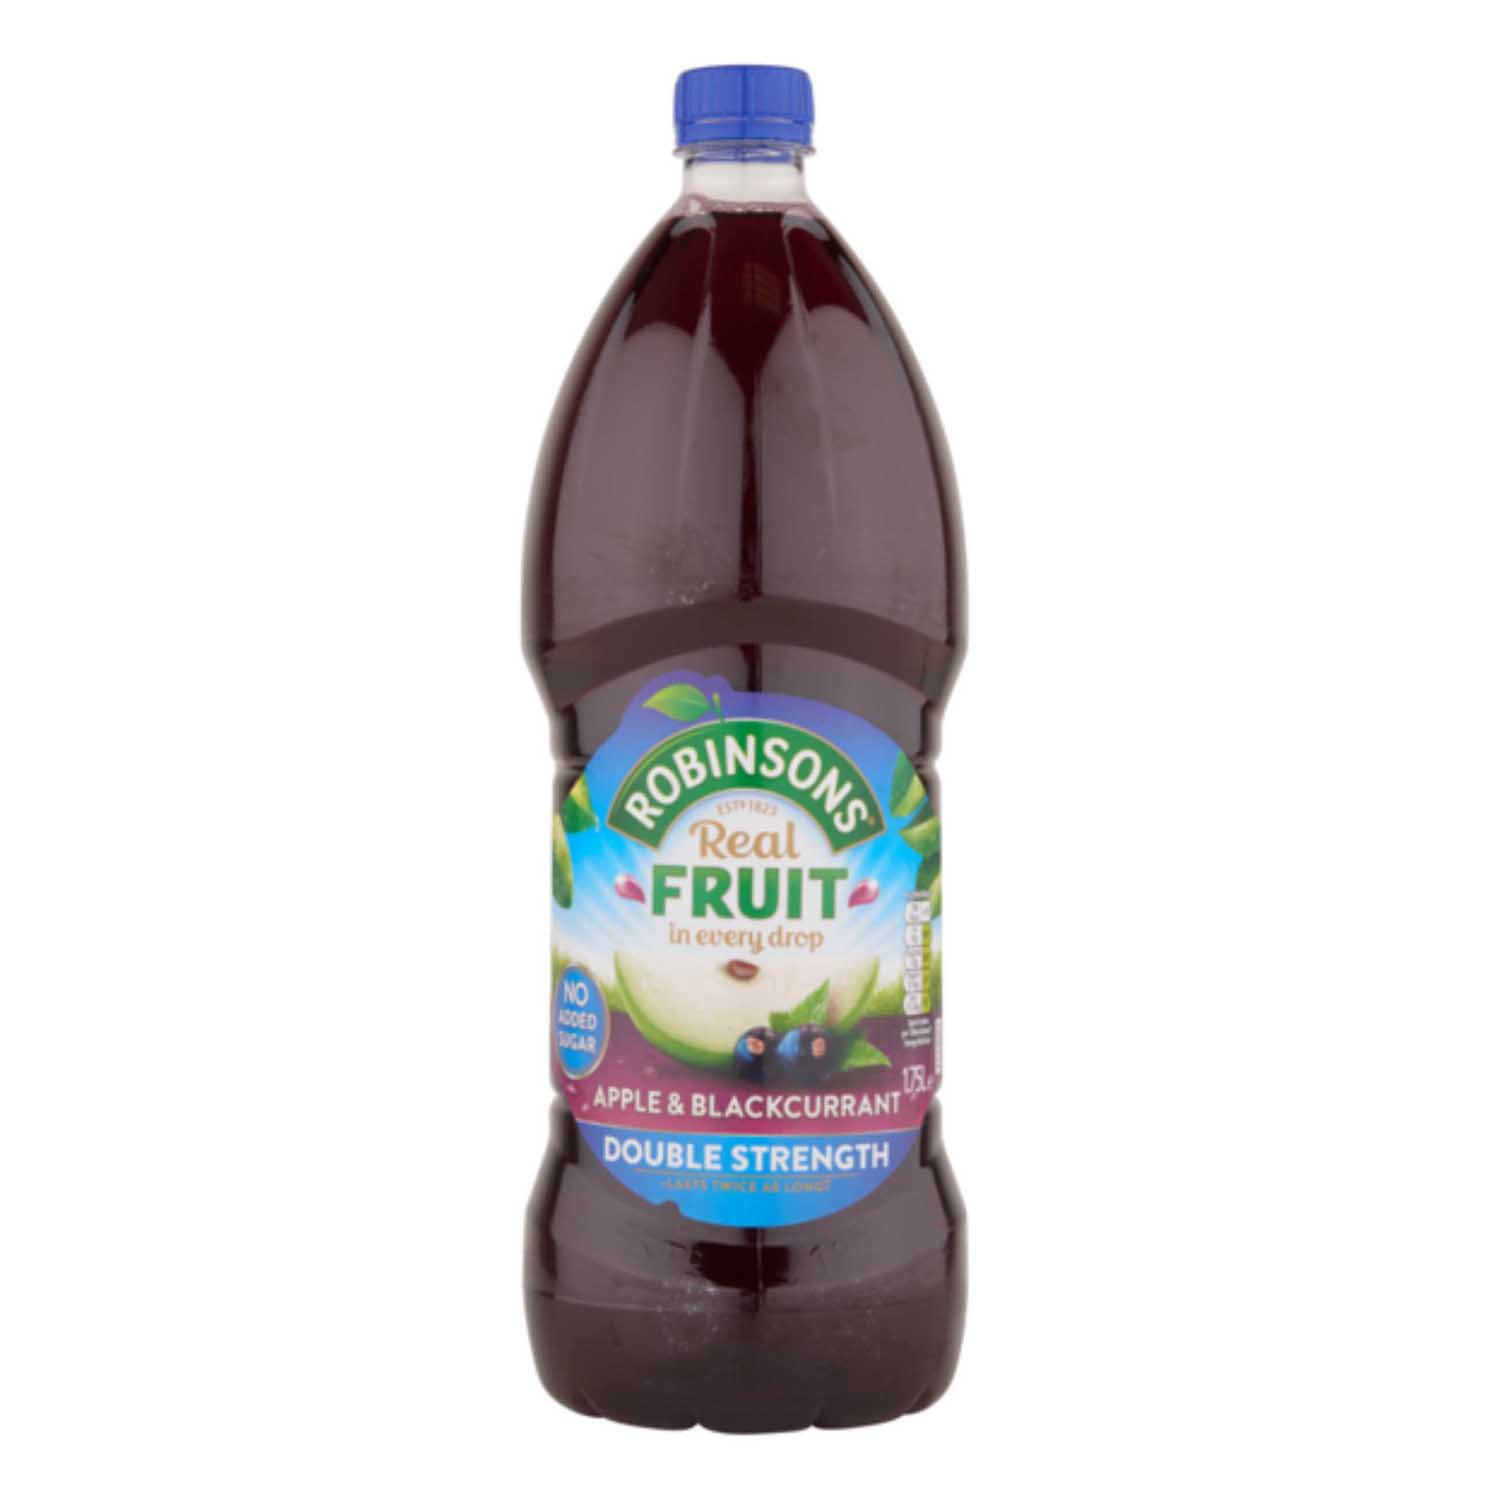 Cold Drinks Robinsons Squash Double Concentrate No Added Sugar 1.75 Litres Apple & Blackcurrant Ref 200660 Pack 2